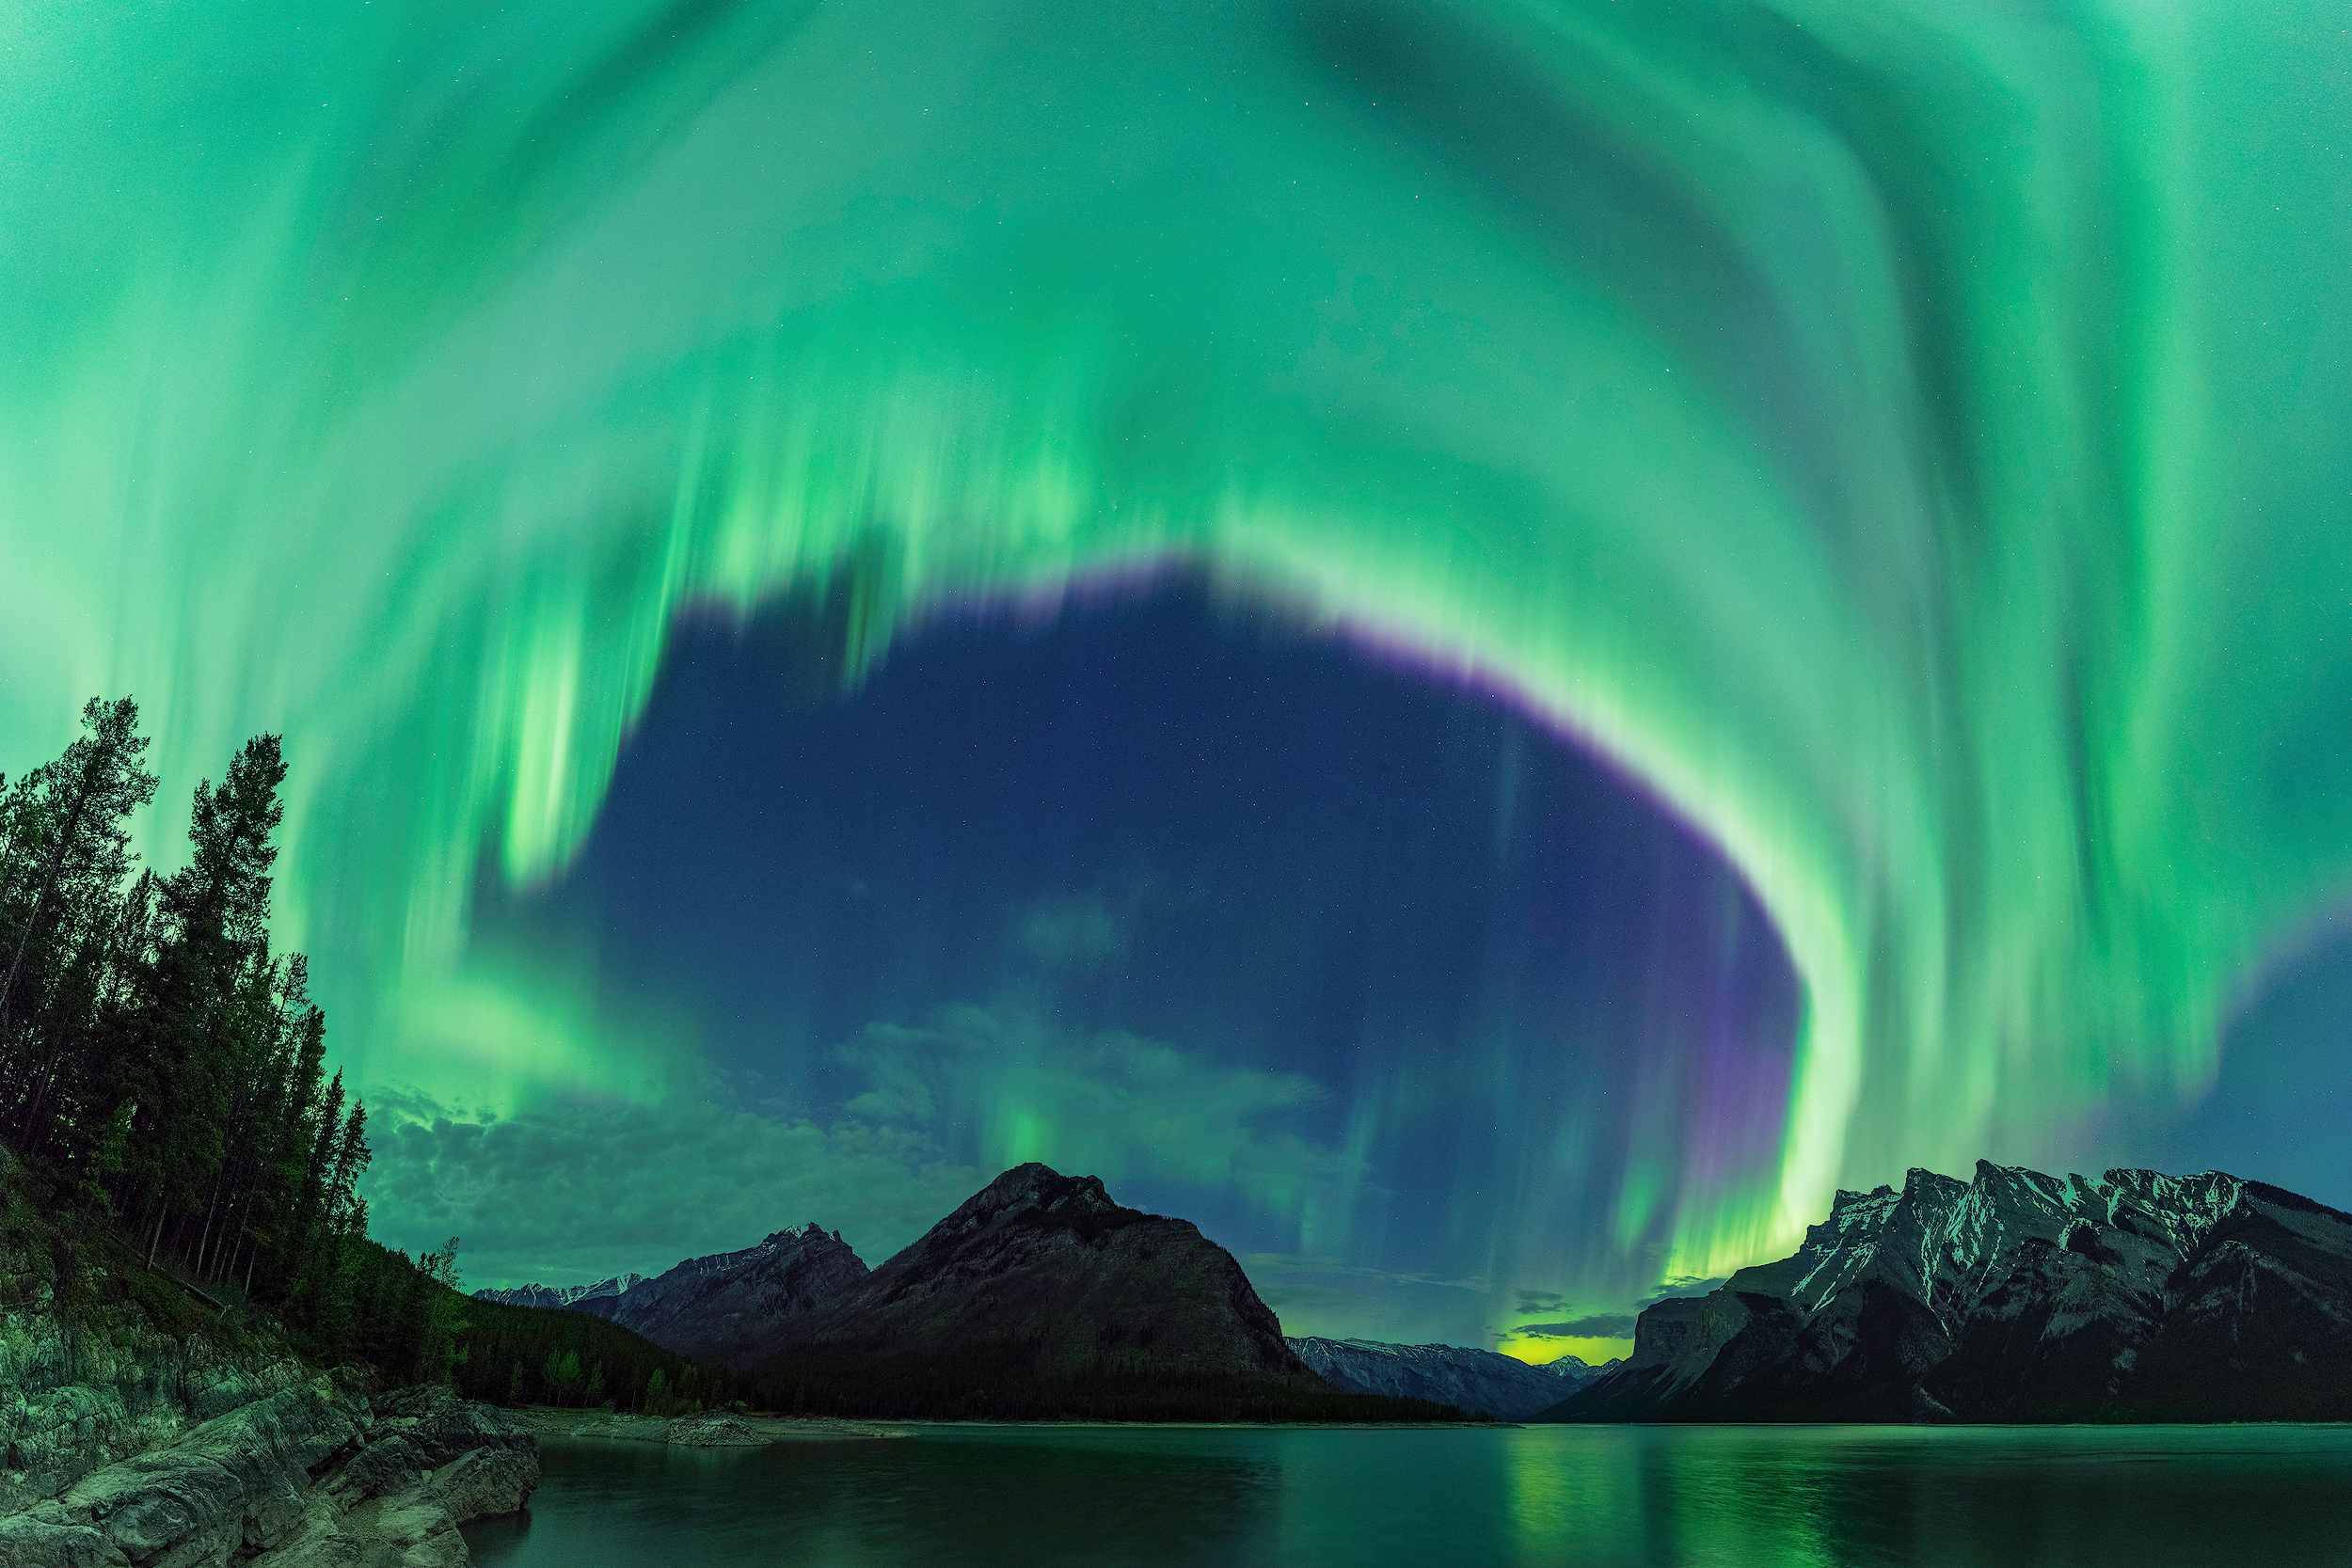 An arching wave of northern lights dances above Lake Minnewanka in Alberta, Canada - Mike Mezeul II – (2500x1667)